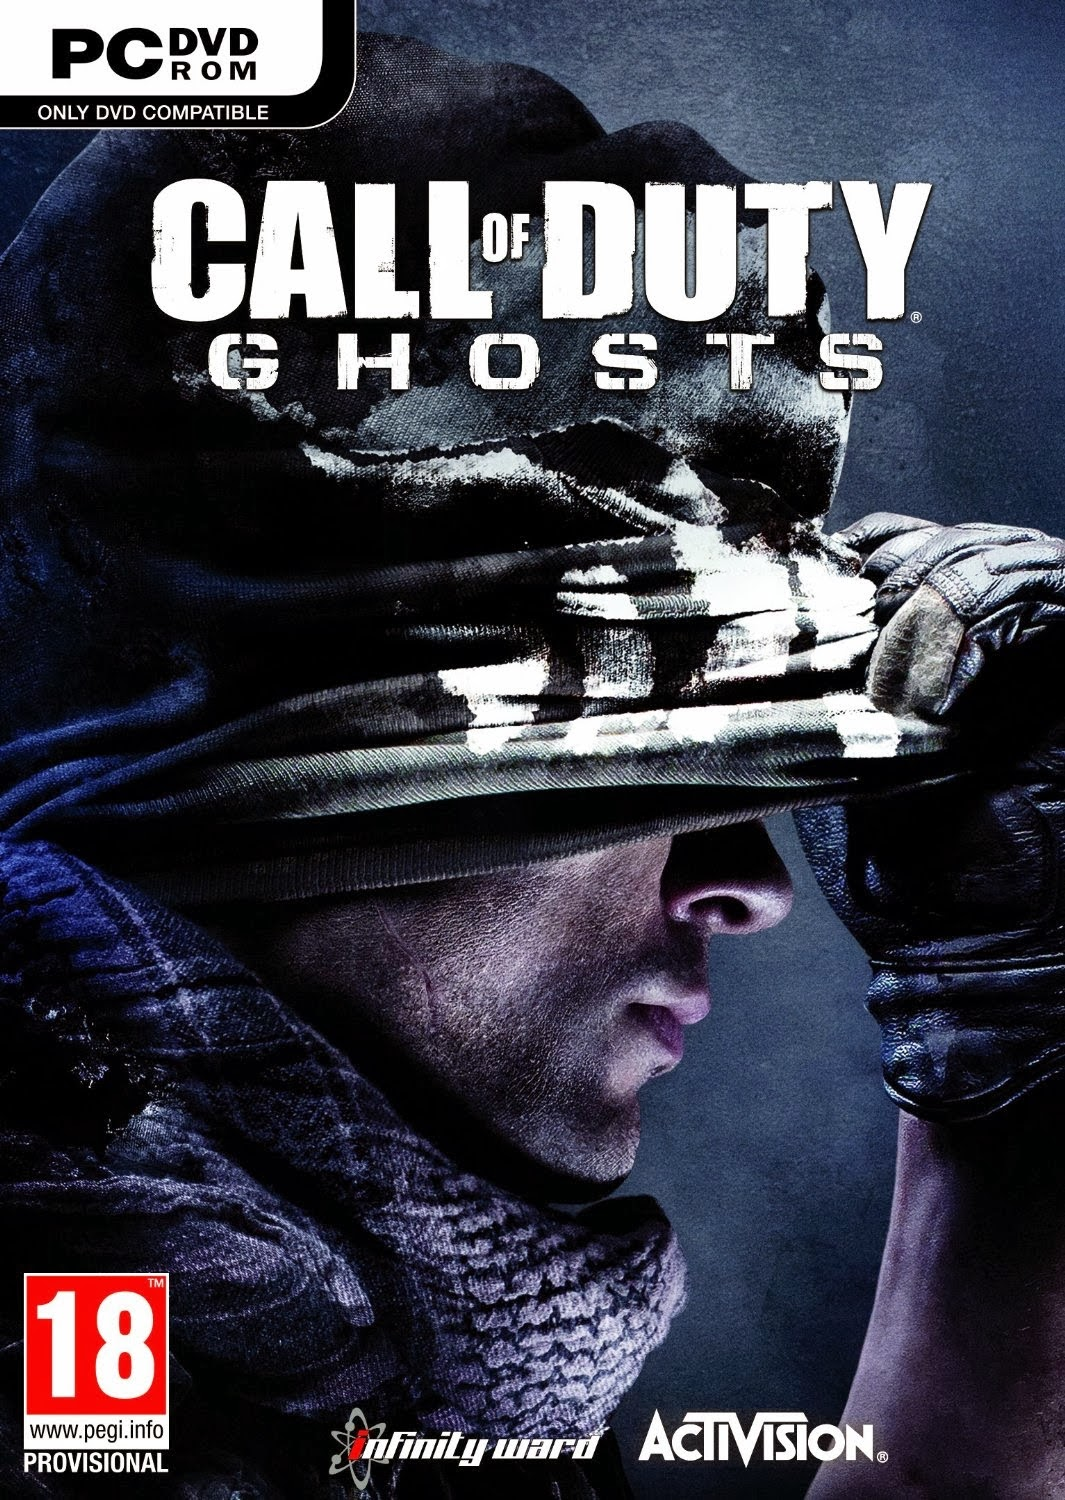 Call of Duty Ghosts - Free Download PC Games - gamesfunnel